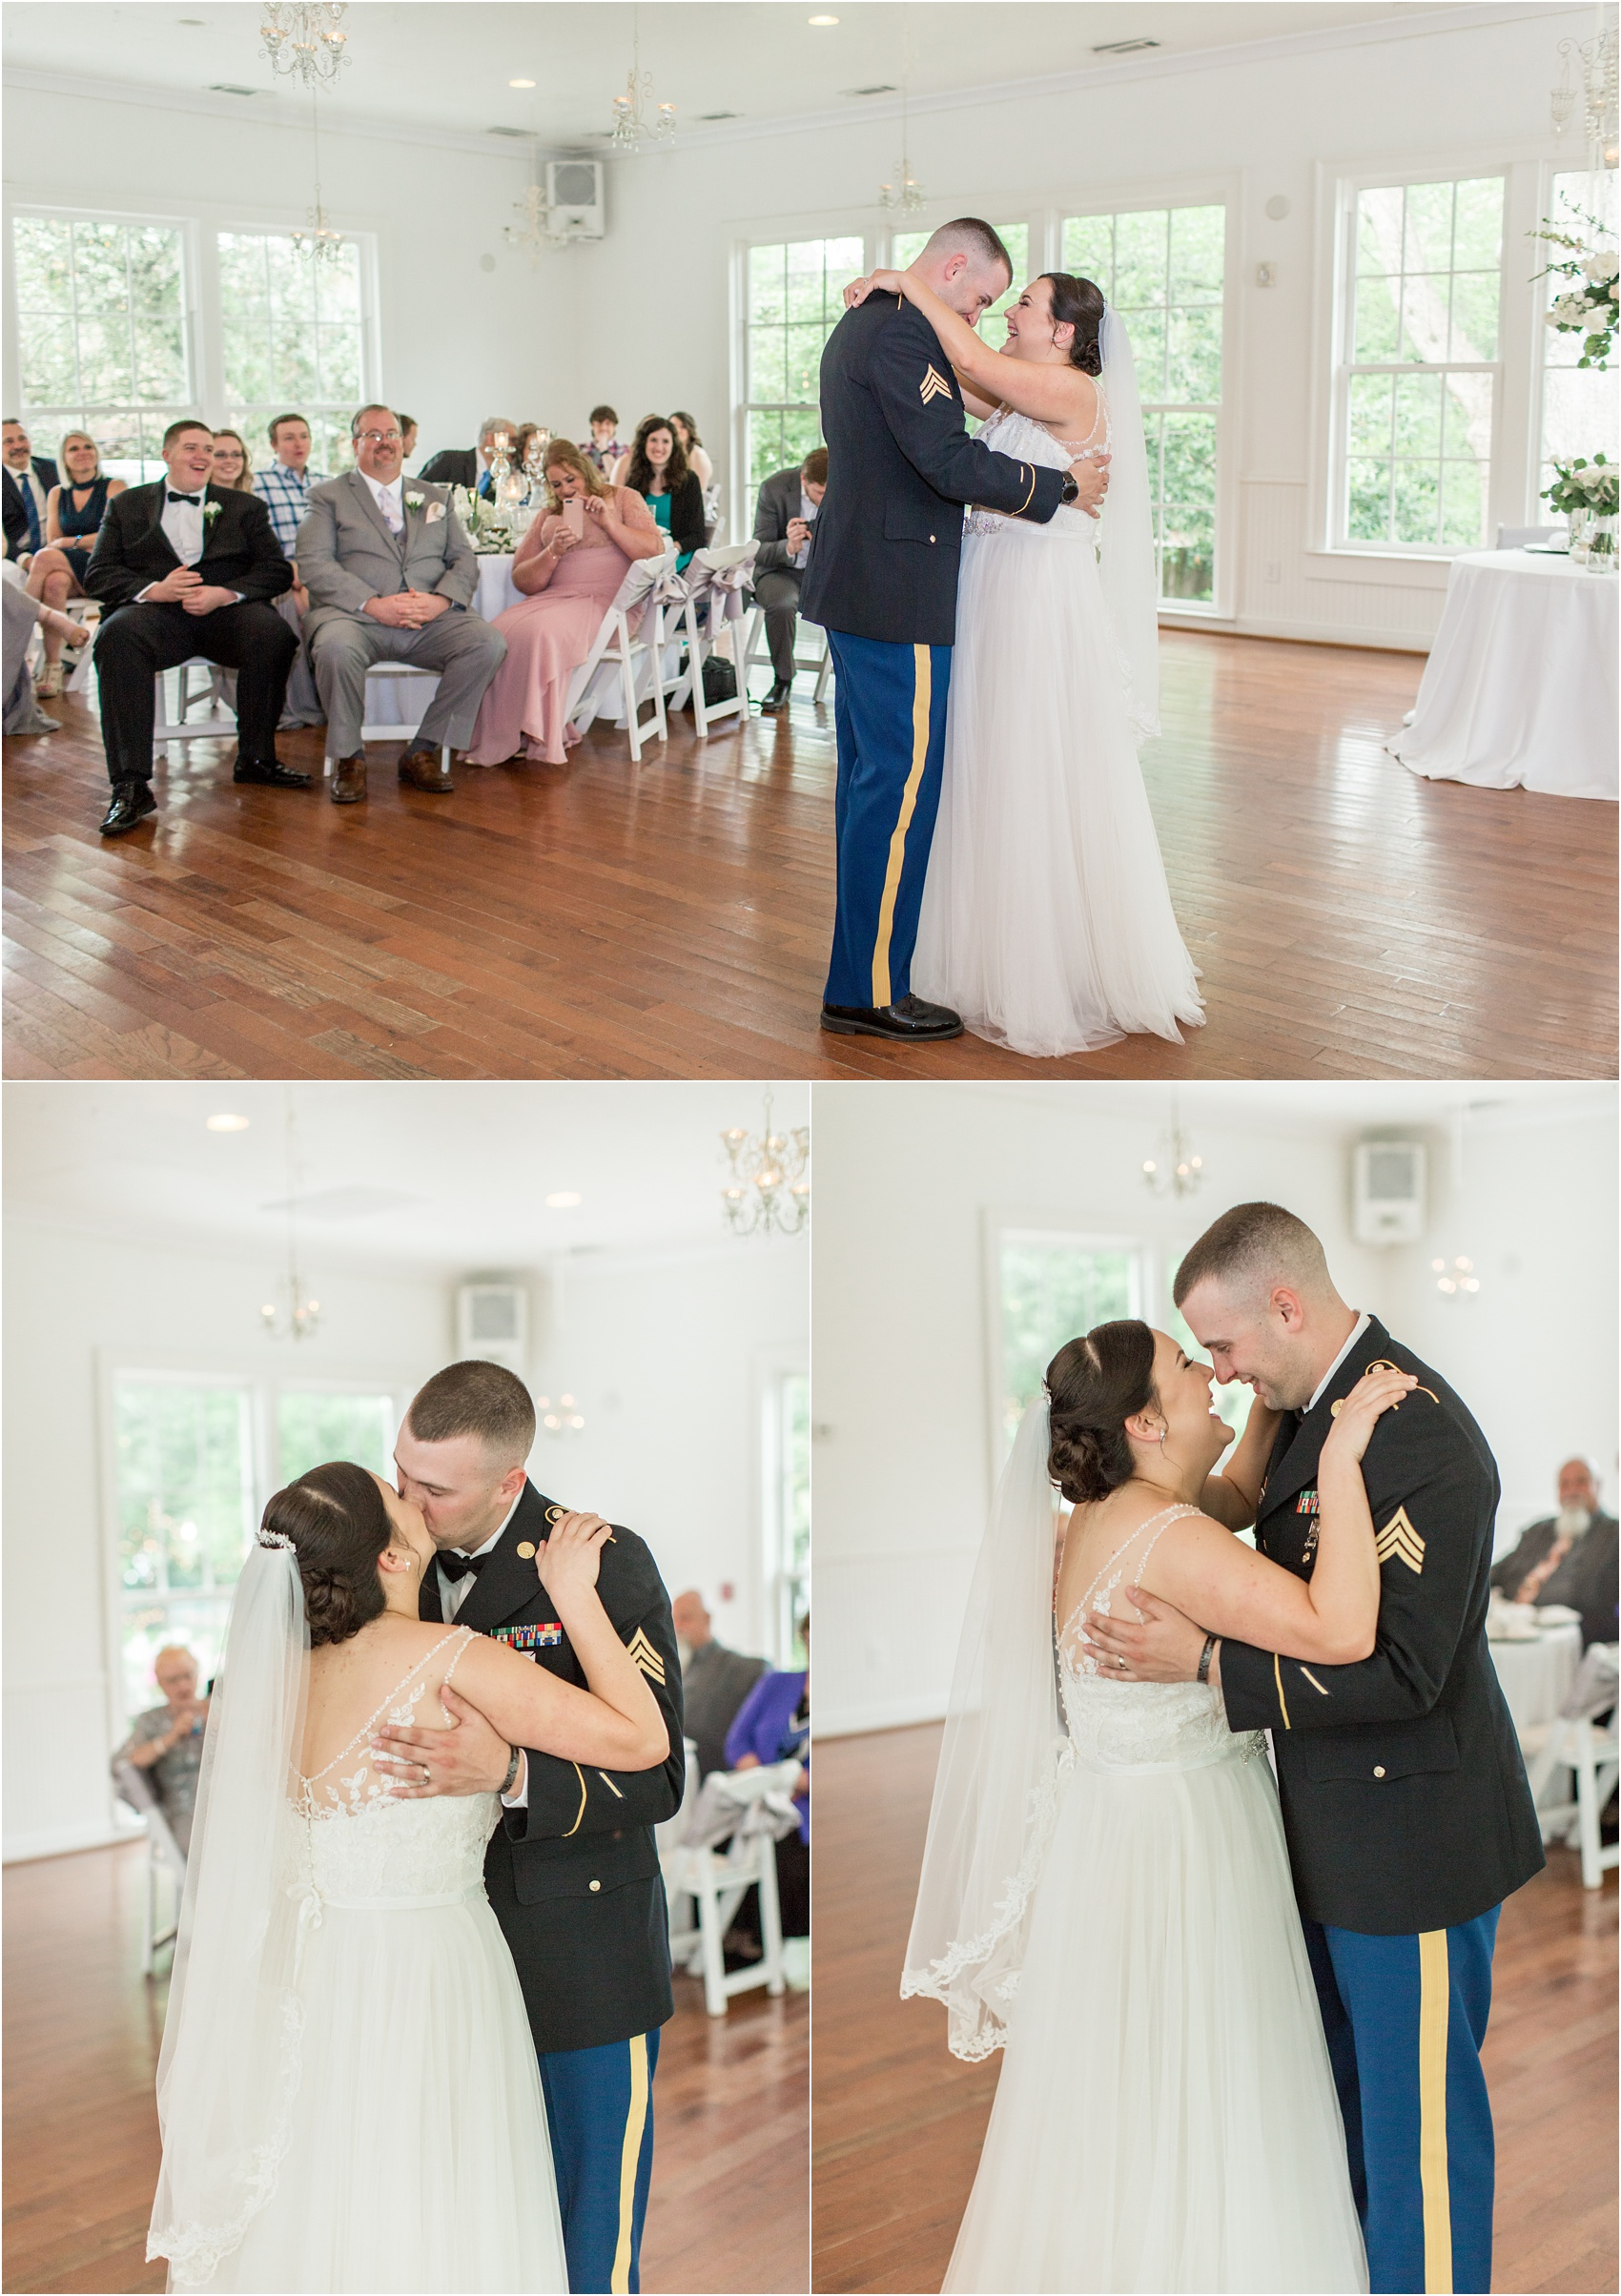 Savannah Eve Photography- Newton Wedding- Blog-109.jpg